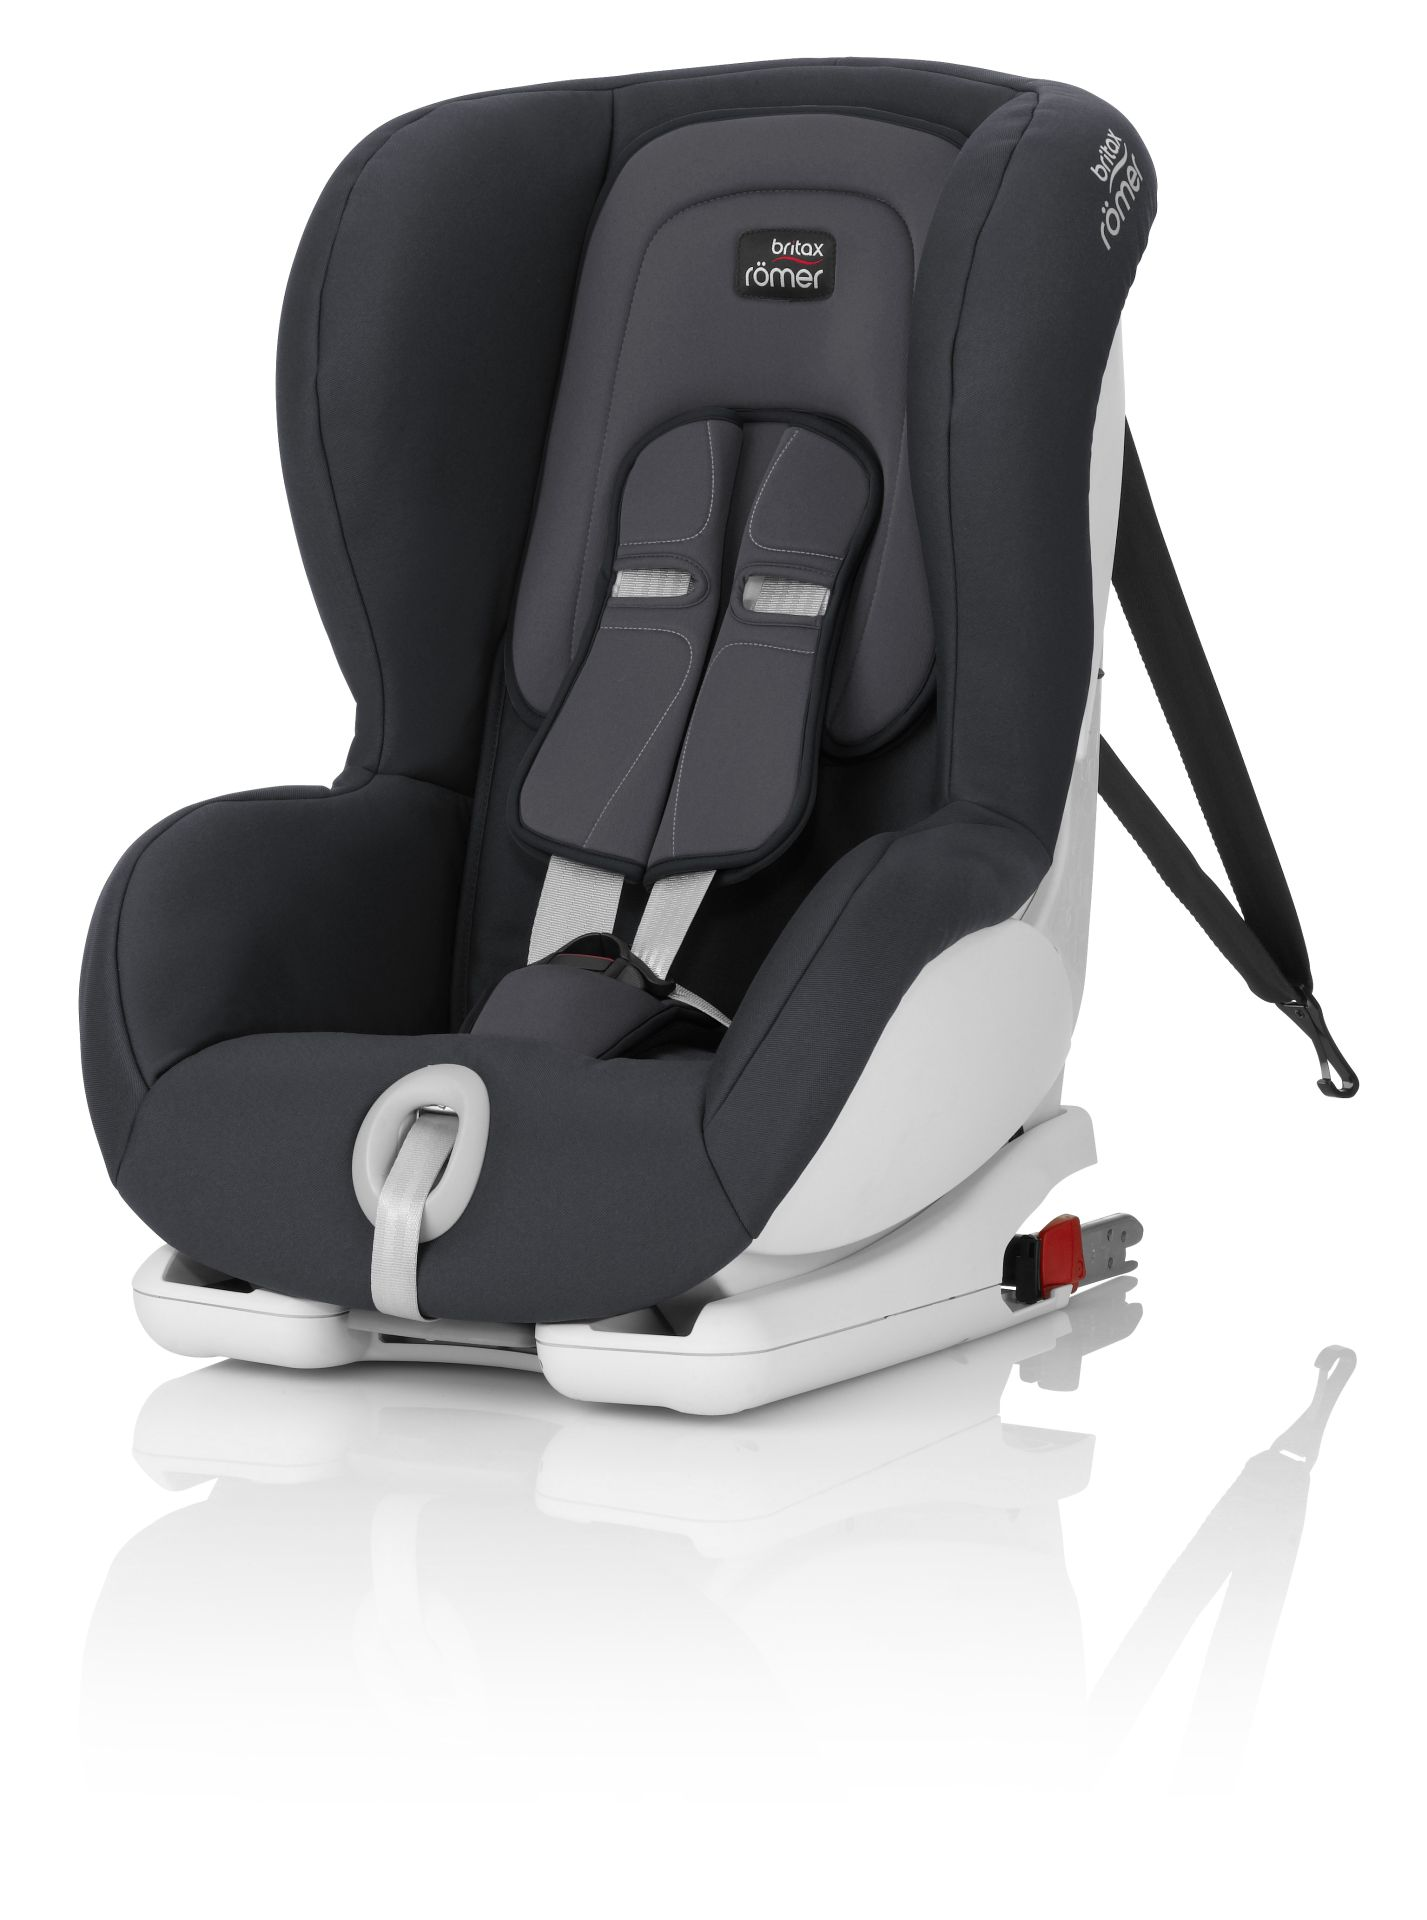 britax r mer kindersitz versafix online kaufen bei kidsroom kindersitze kindersitze mit isofix. Black Bedroom Furniture Sets. Home Design Ideas